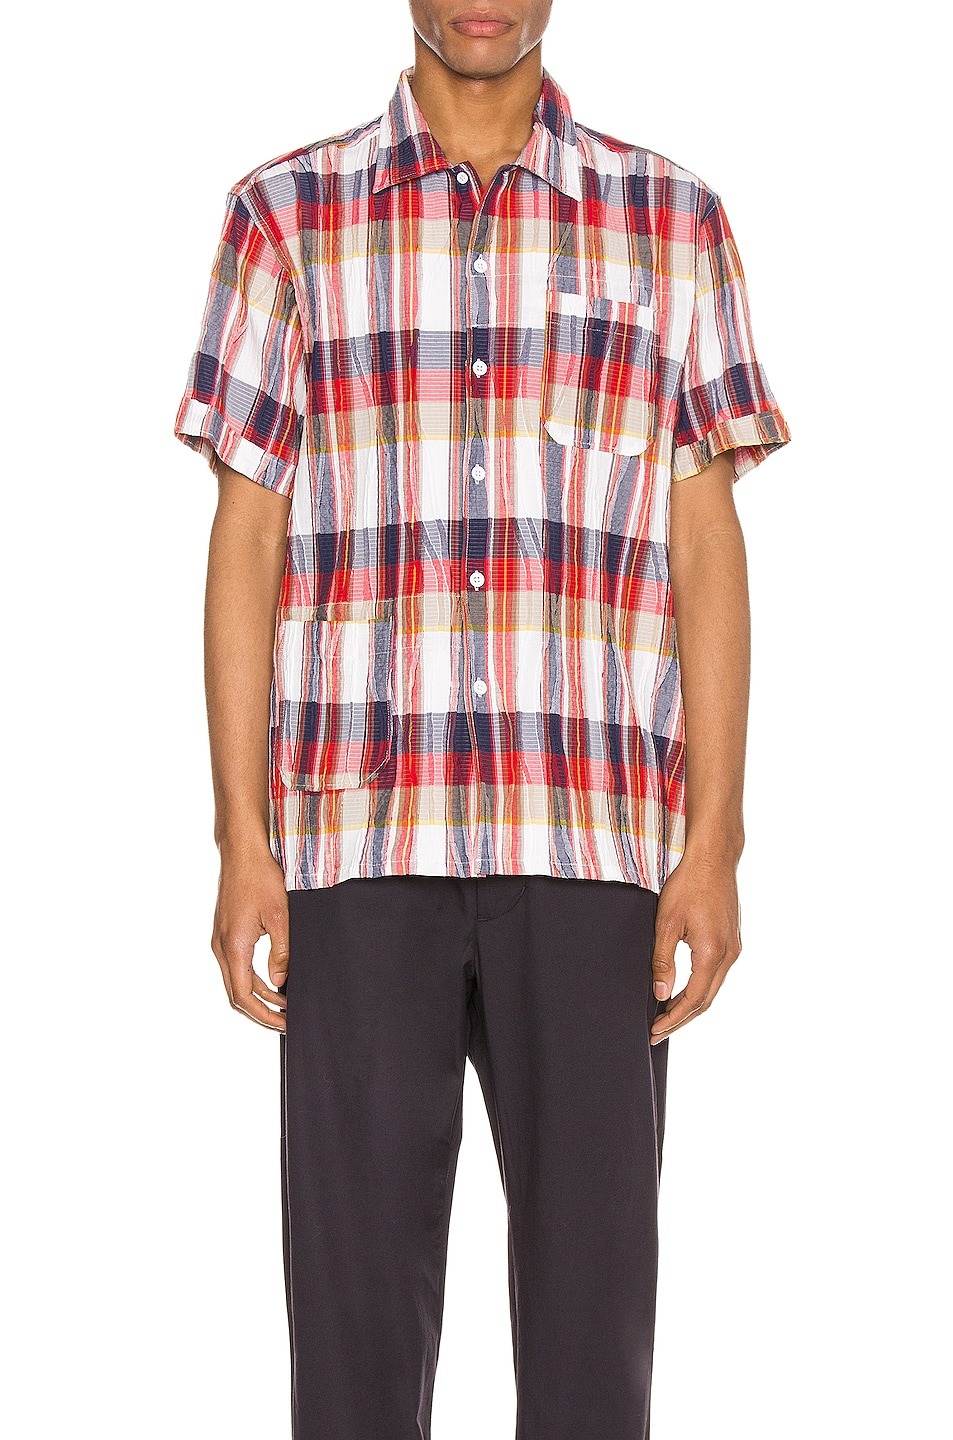 Image 1 of Engineered Garments Camp Shirt in Red & White Cotton Crepe Check